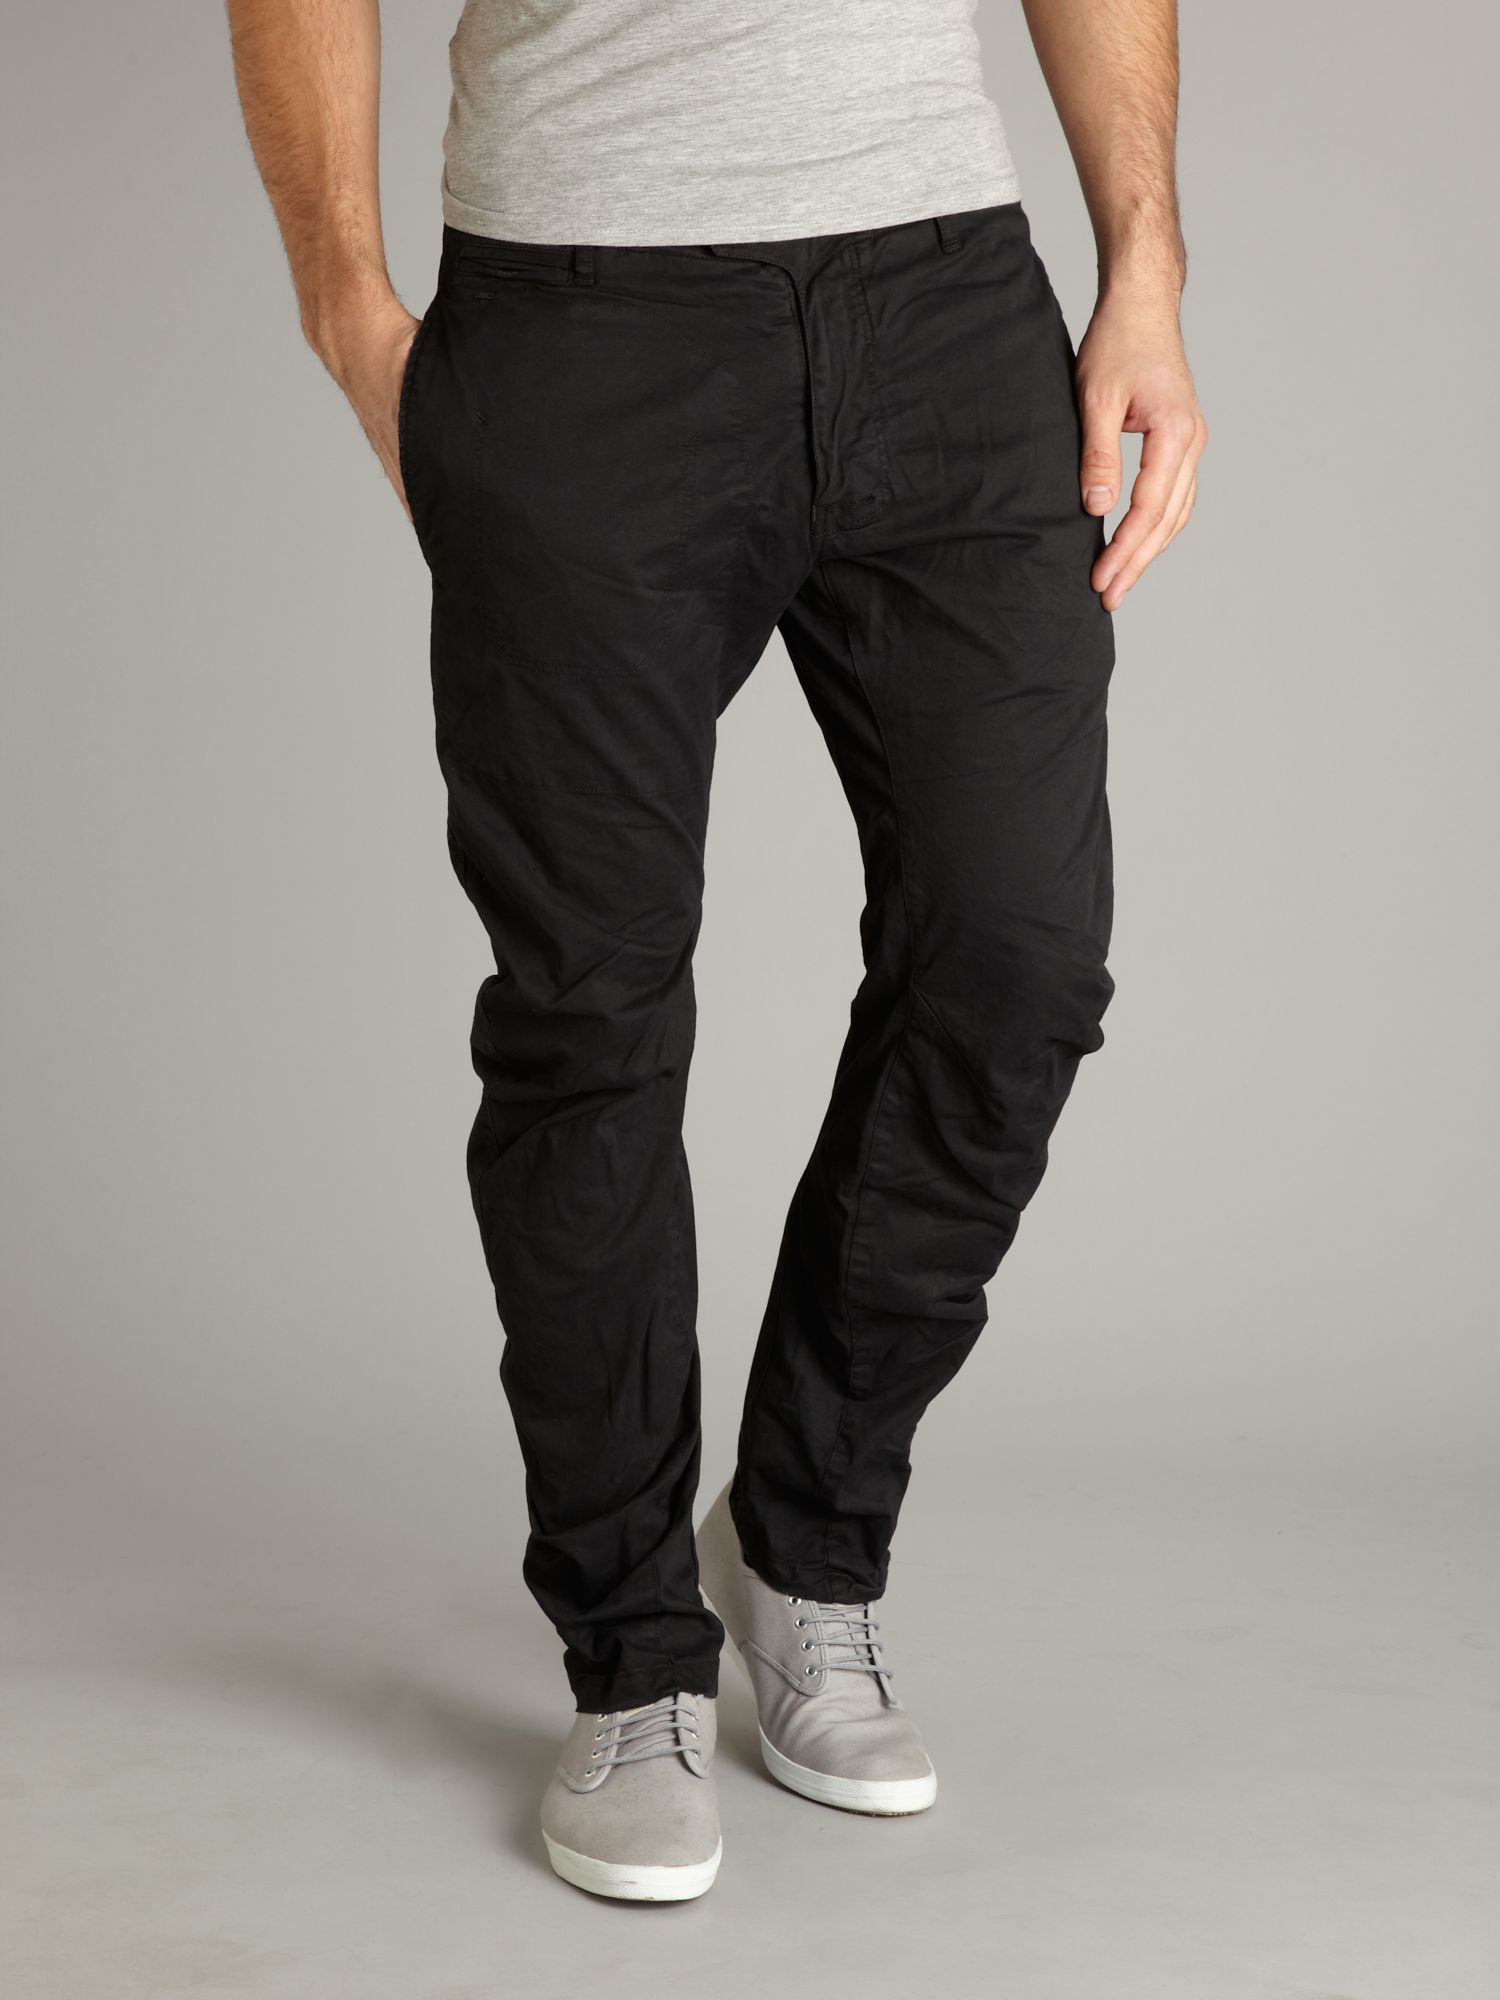 """Levi's CT tapered jeans Size 26"""" waist, 32"""" leg Ideal worn turned up CT are customised & tapered for a better fit around the bum & legs to the original s."""